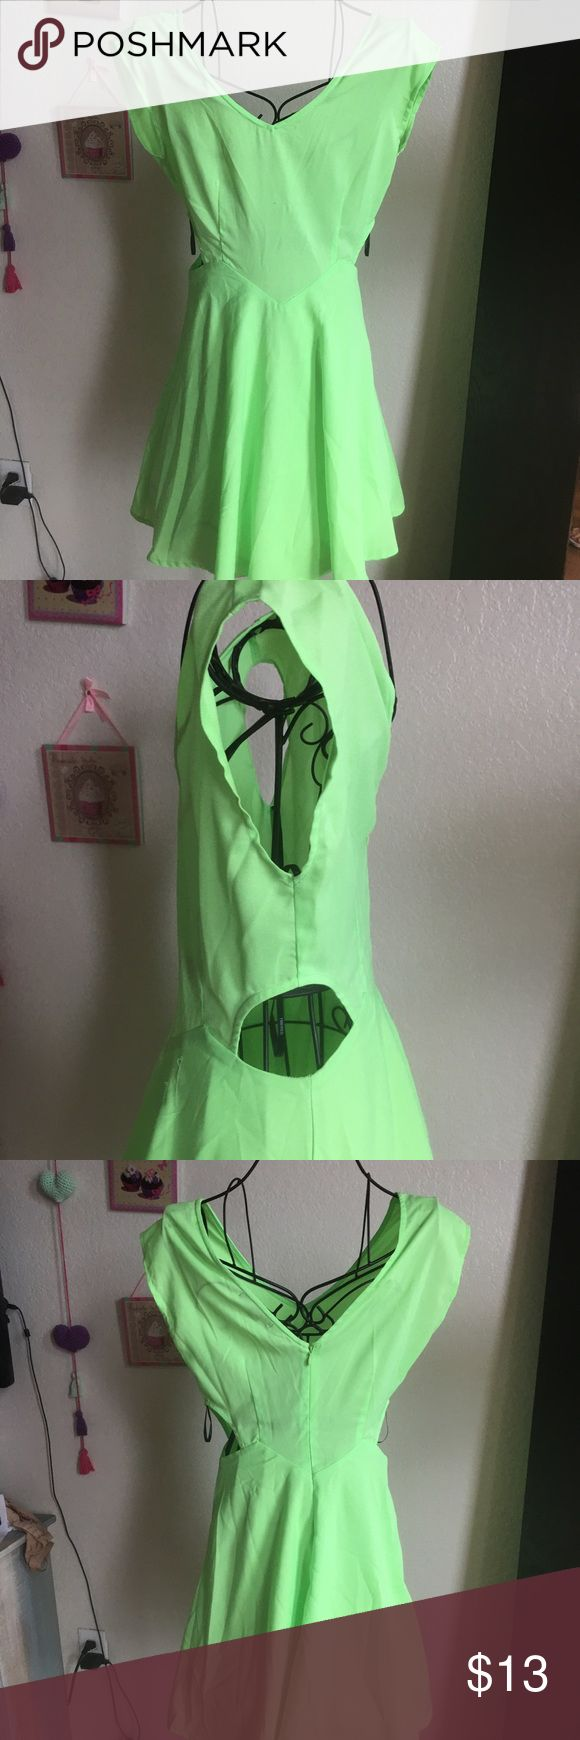 Forever 21 Dress Forever 21 Neon Green Dress Forever 21 Dresses Mini